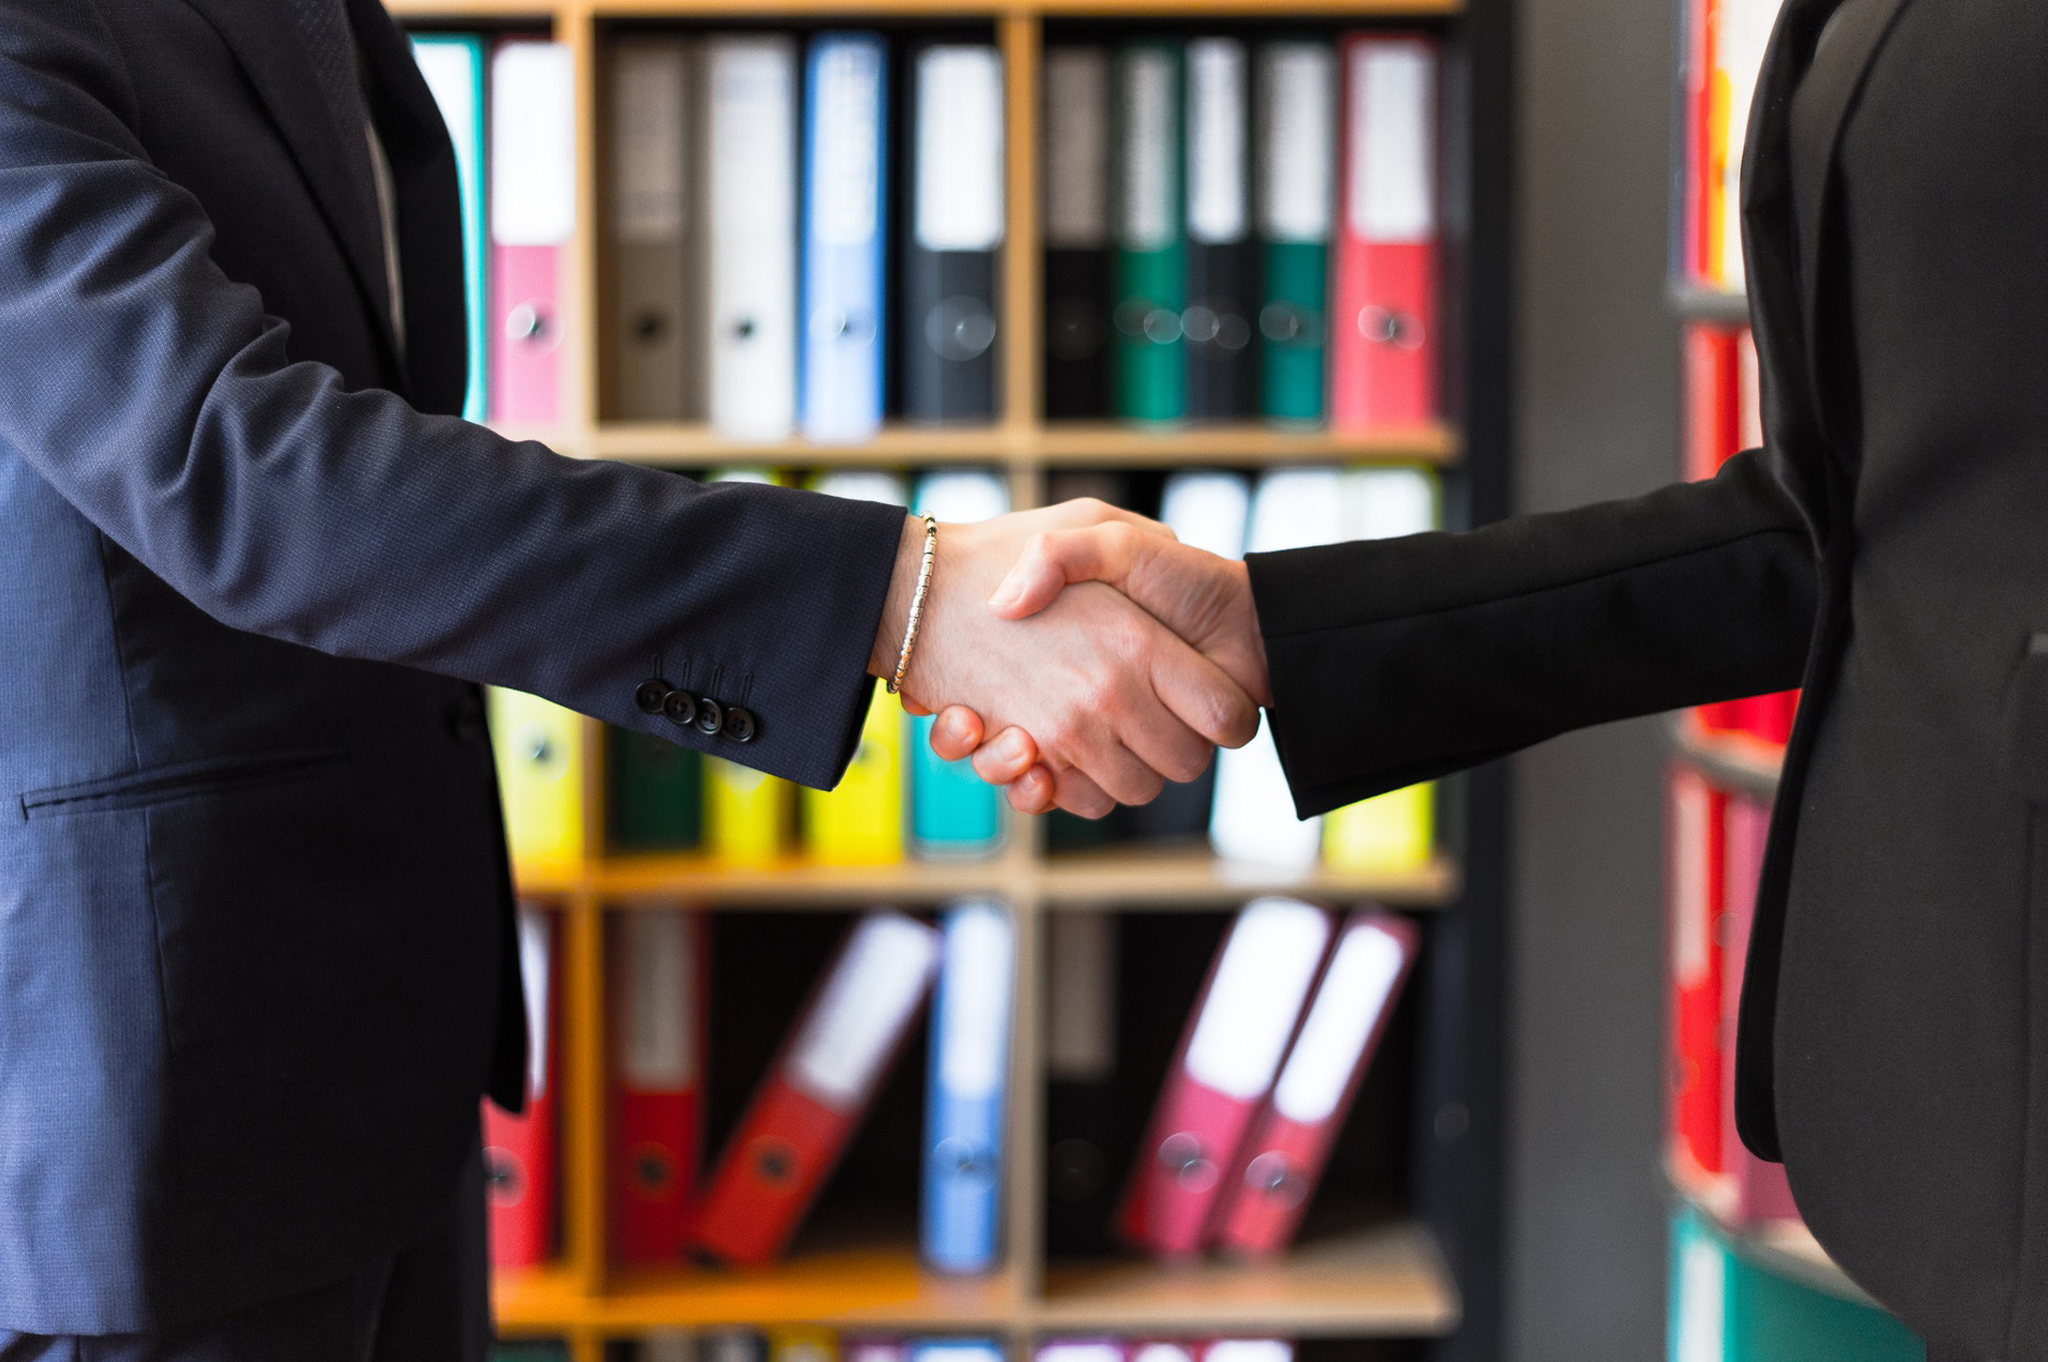 Shaking Hands After The Meeting